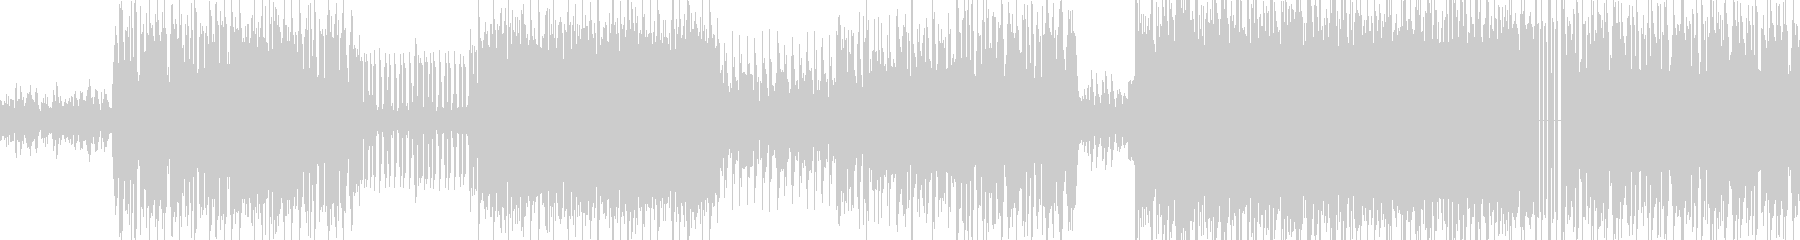 The main driving music is a piano with a sense of speed's unreproduced waveform